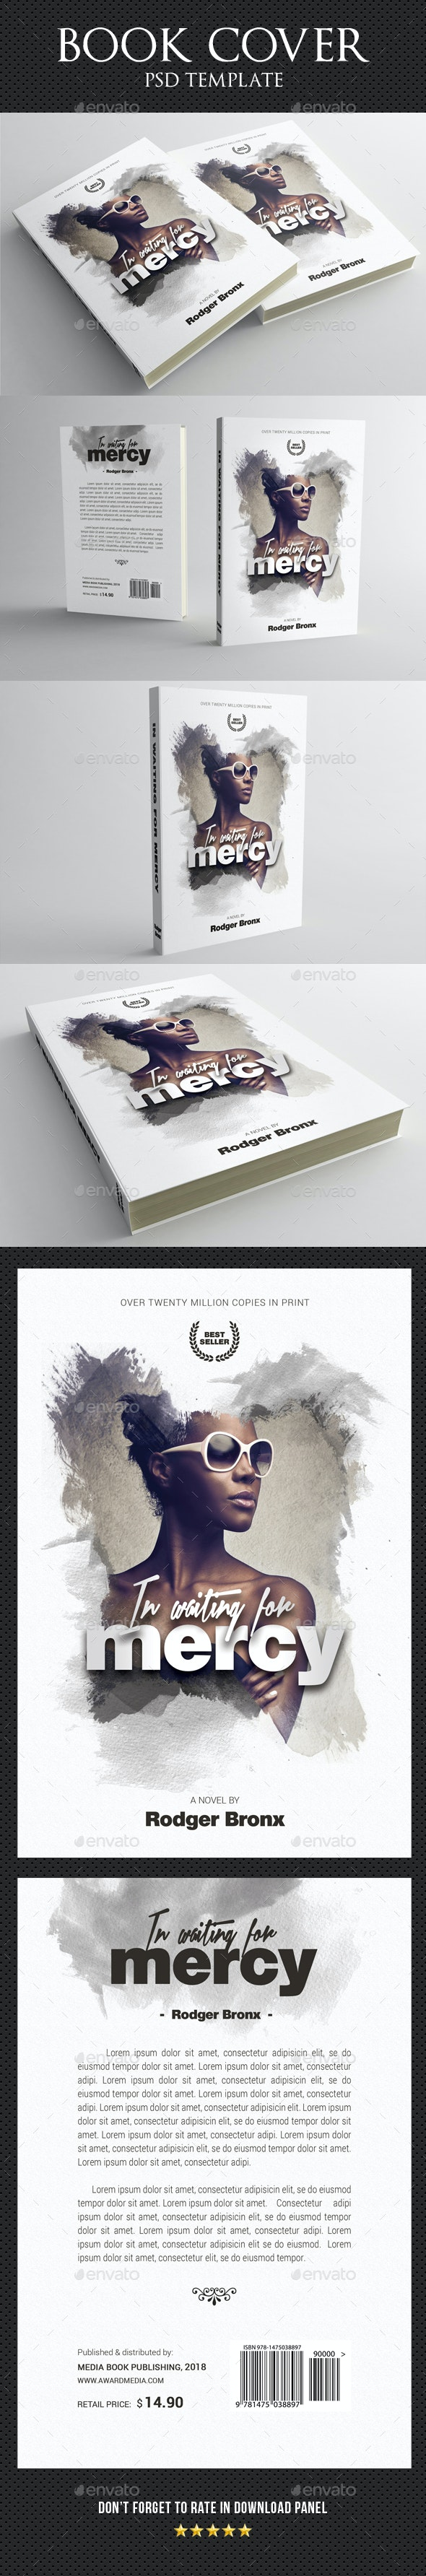 Book Cover Template 44 - Miscellaneous Print Templates